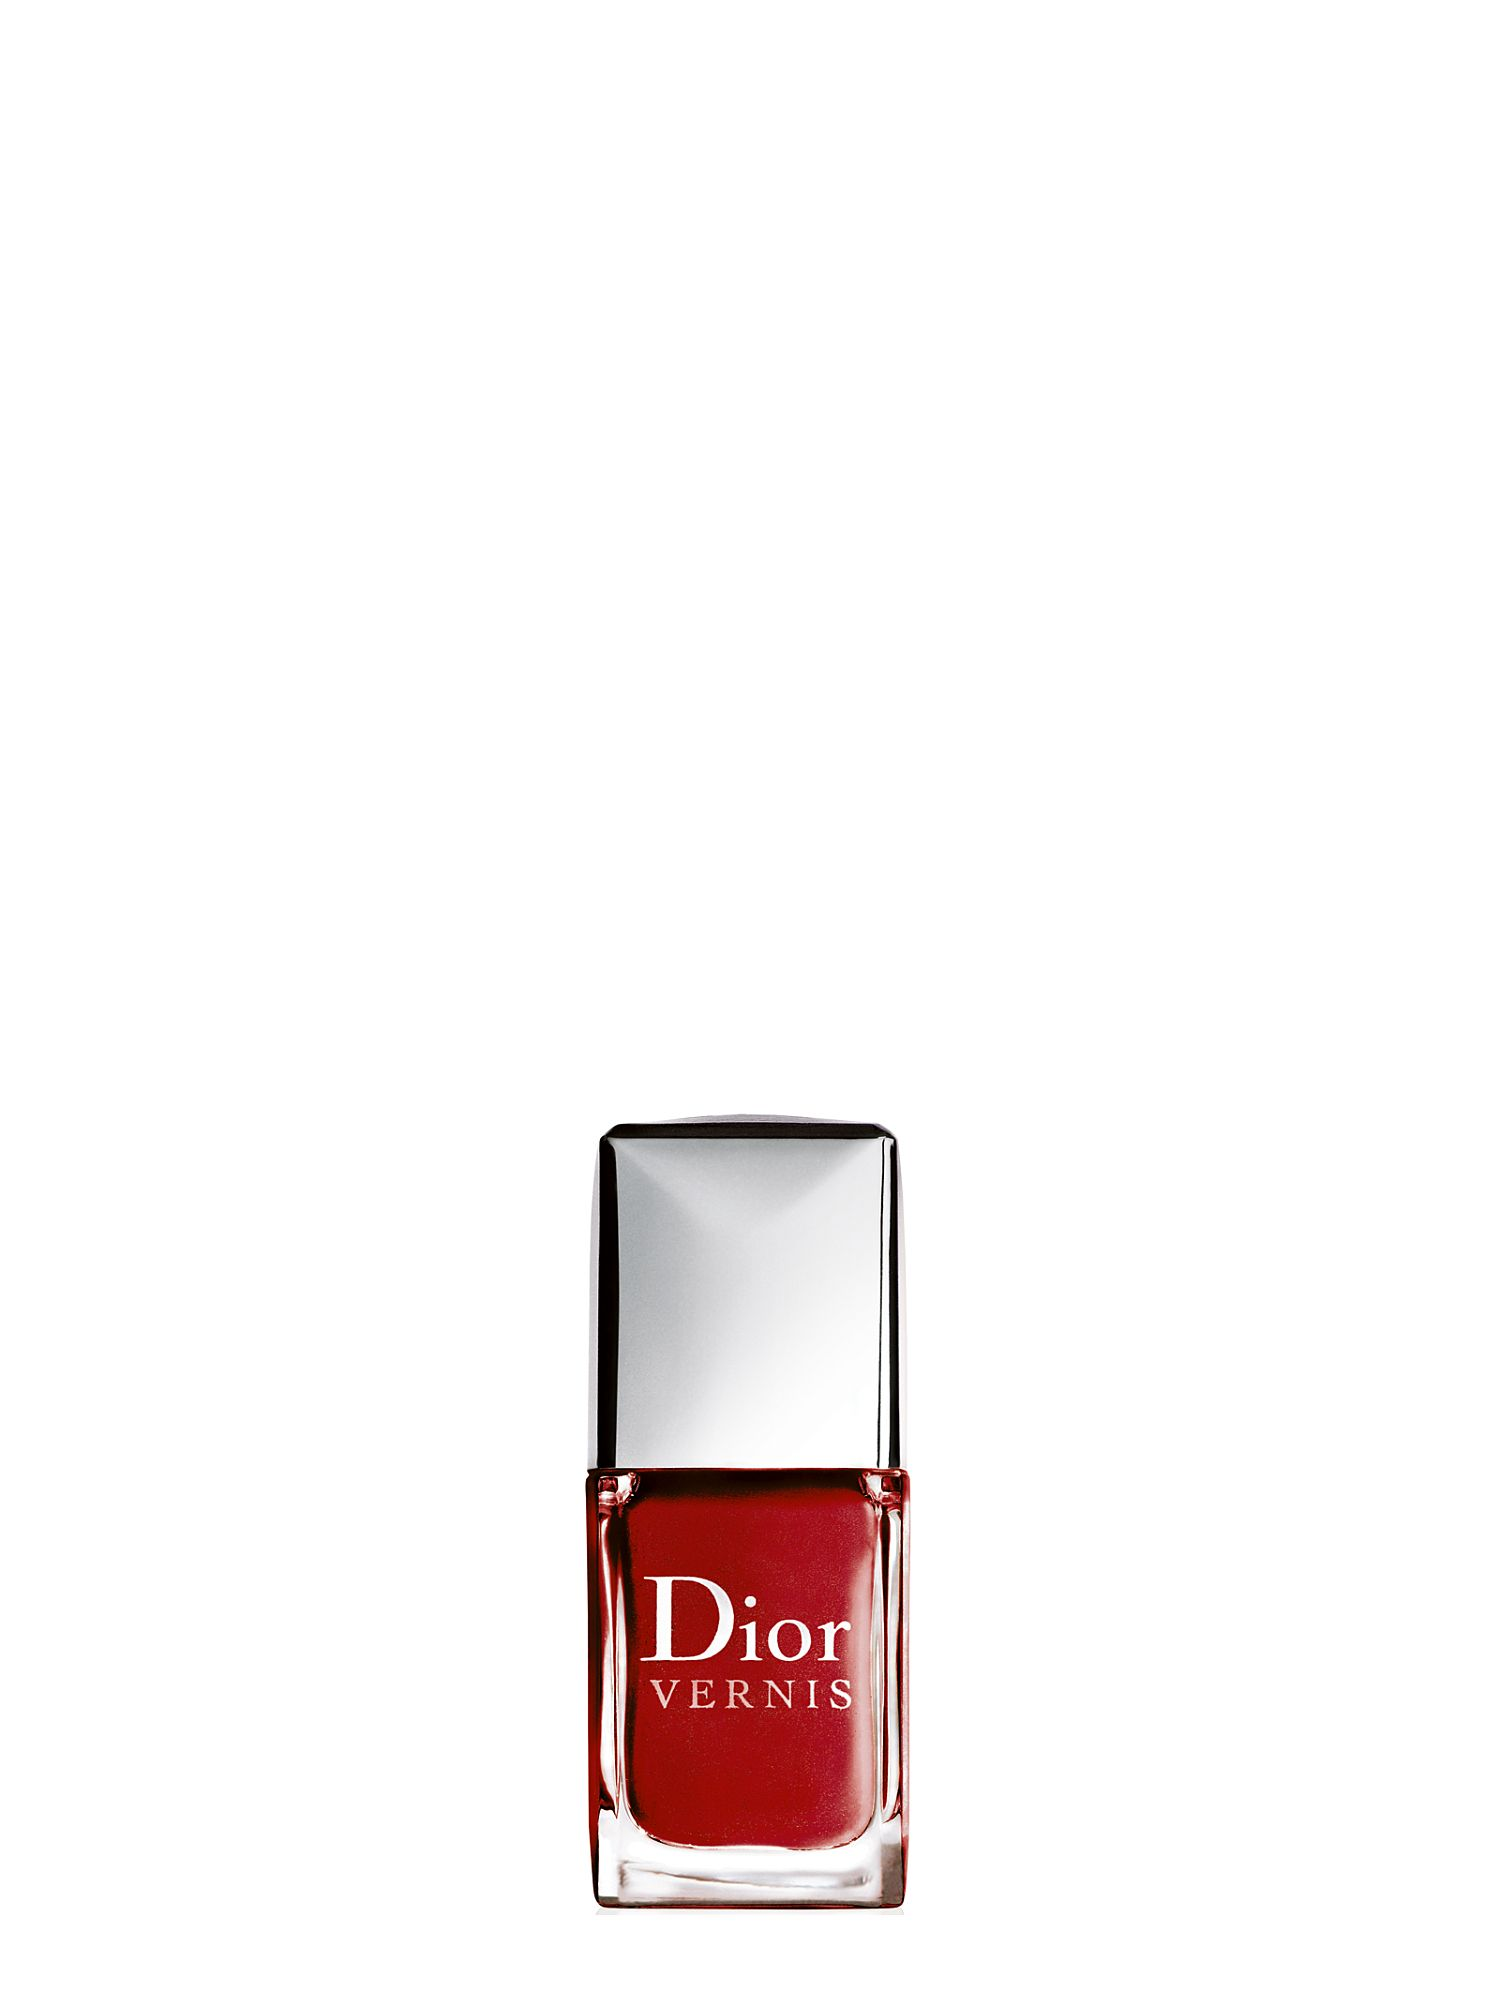 Dior Vernis Long-Wearing Nail Lacquer Porcelain product image